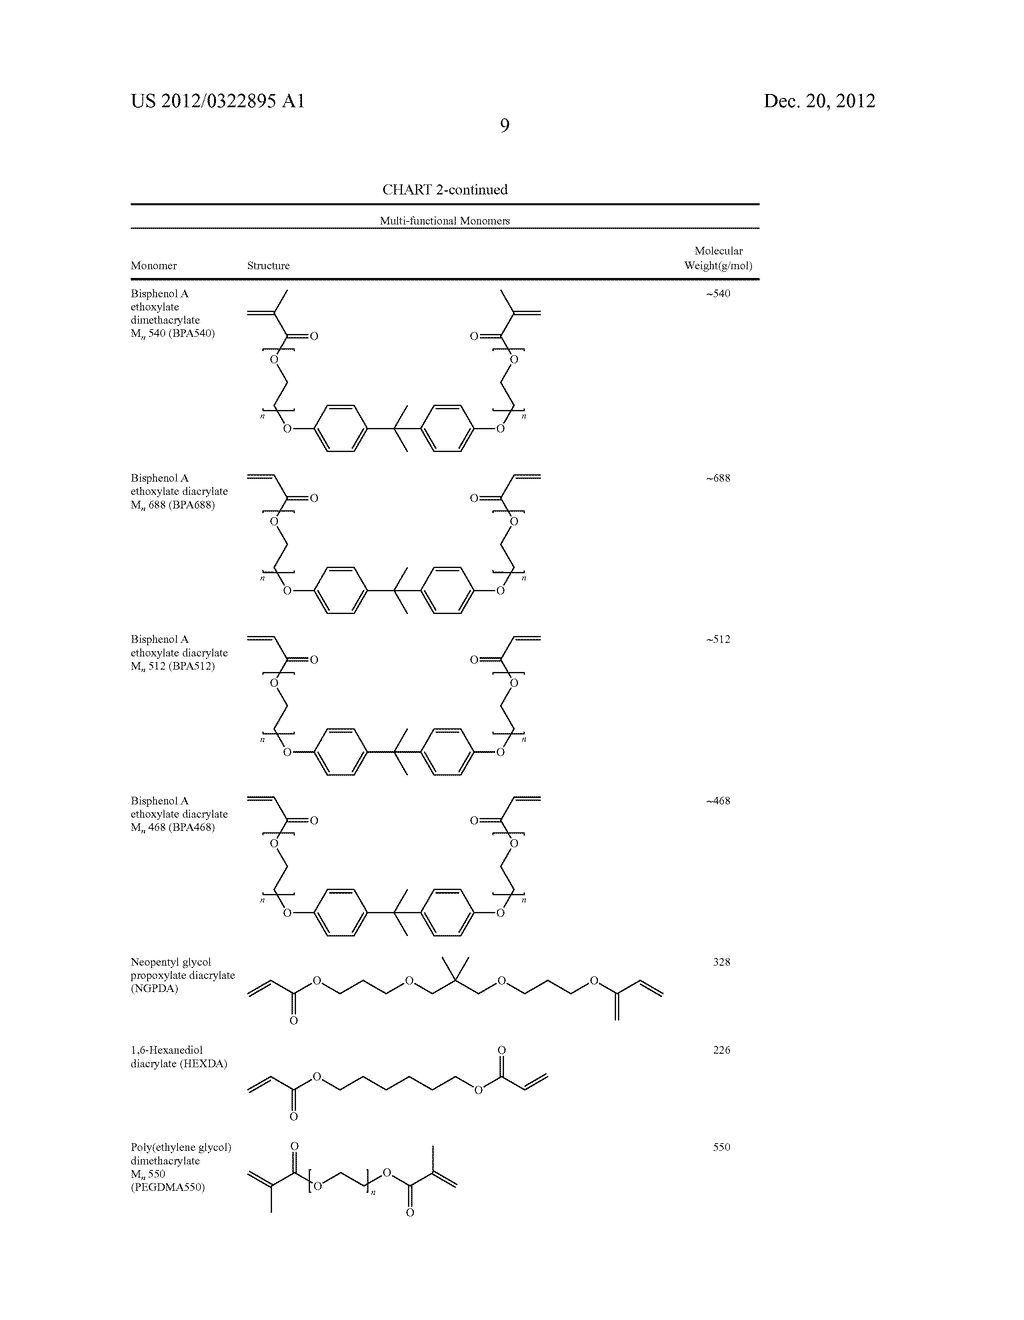 BIODEGRADABLE POLYMERIC NETWORKS AND METHODS FOR MANUFACTURING THE SAME - diagram, schematic, and image 32